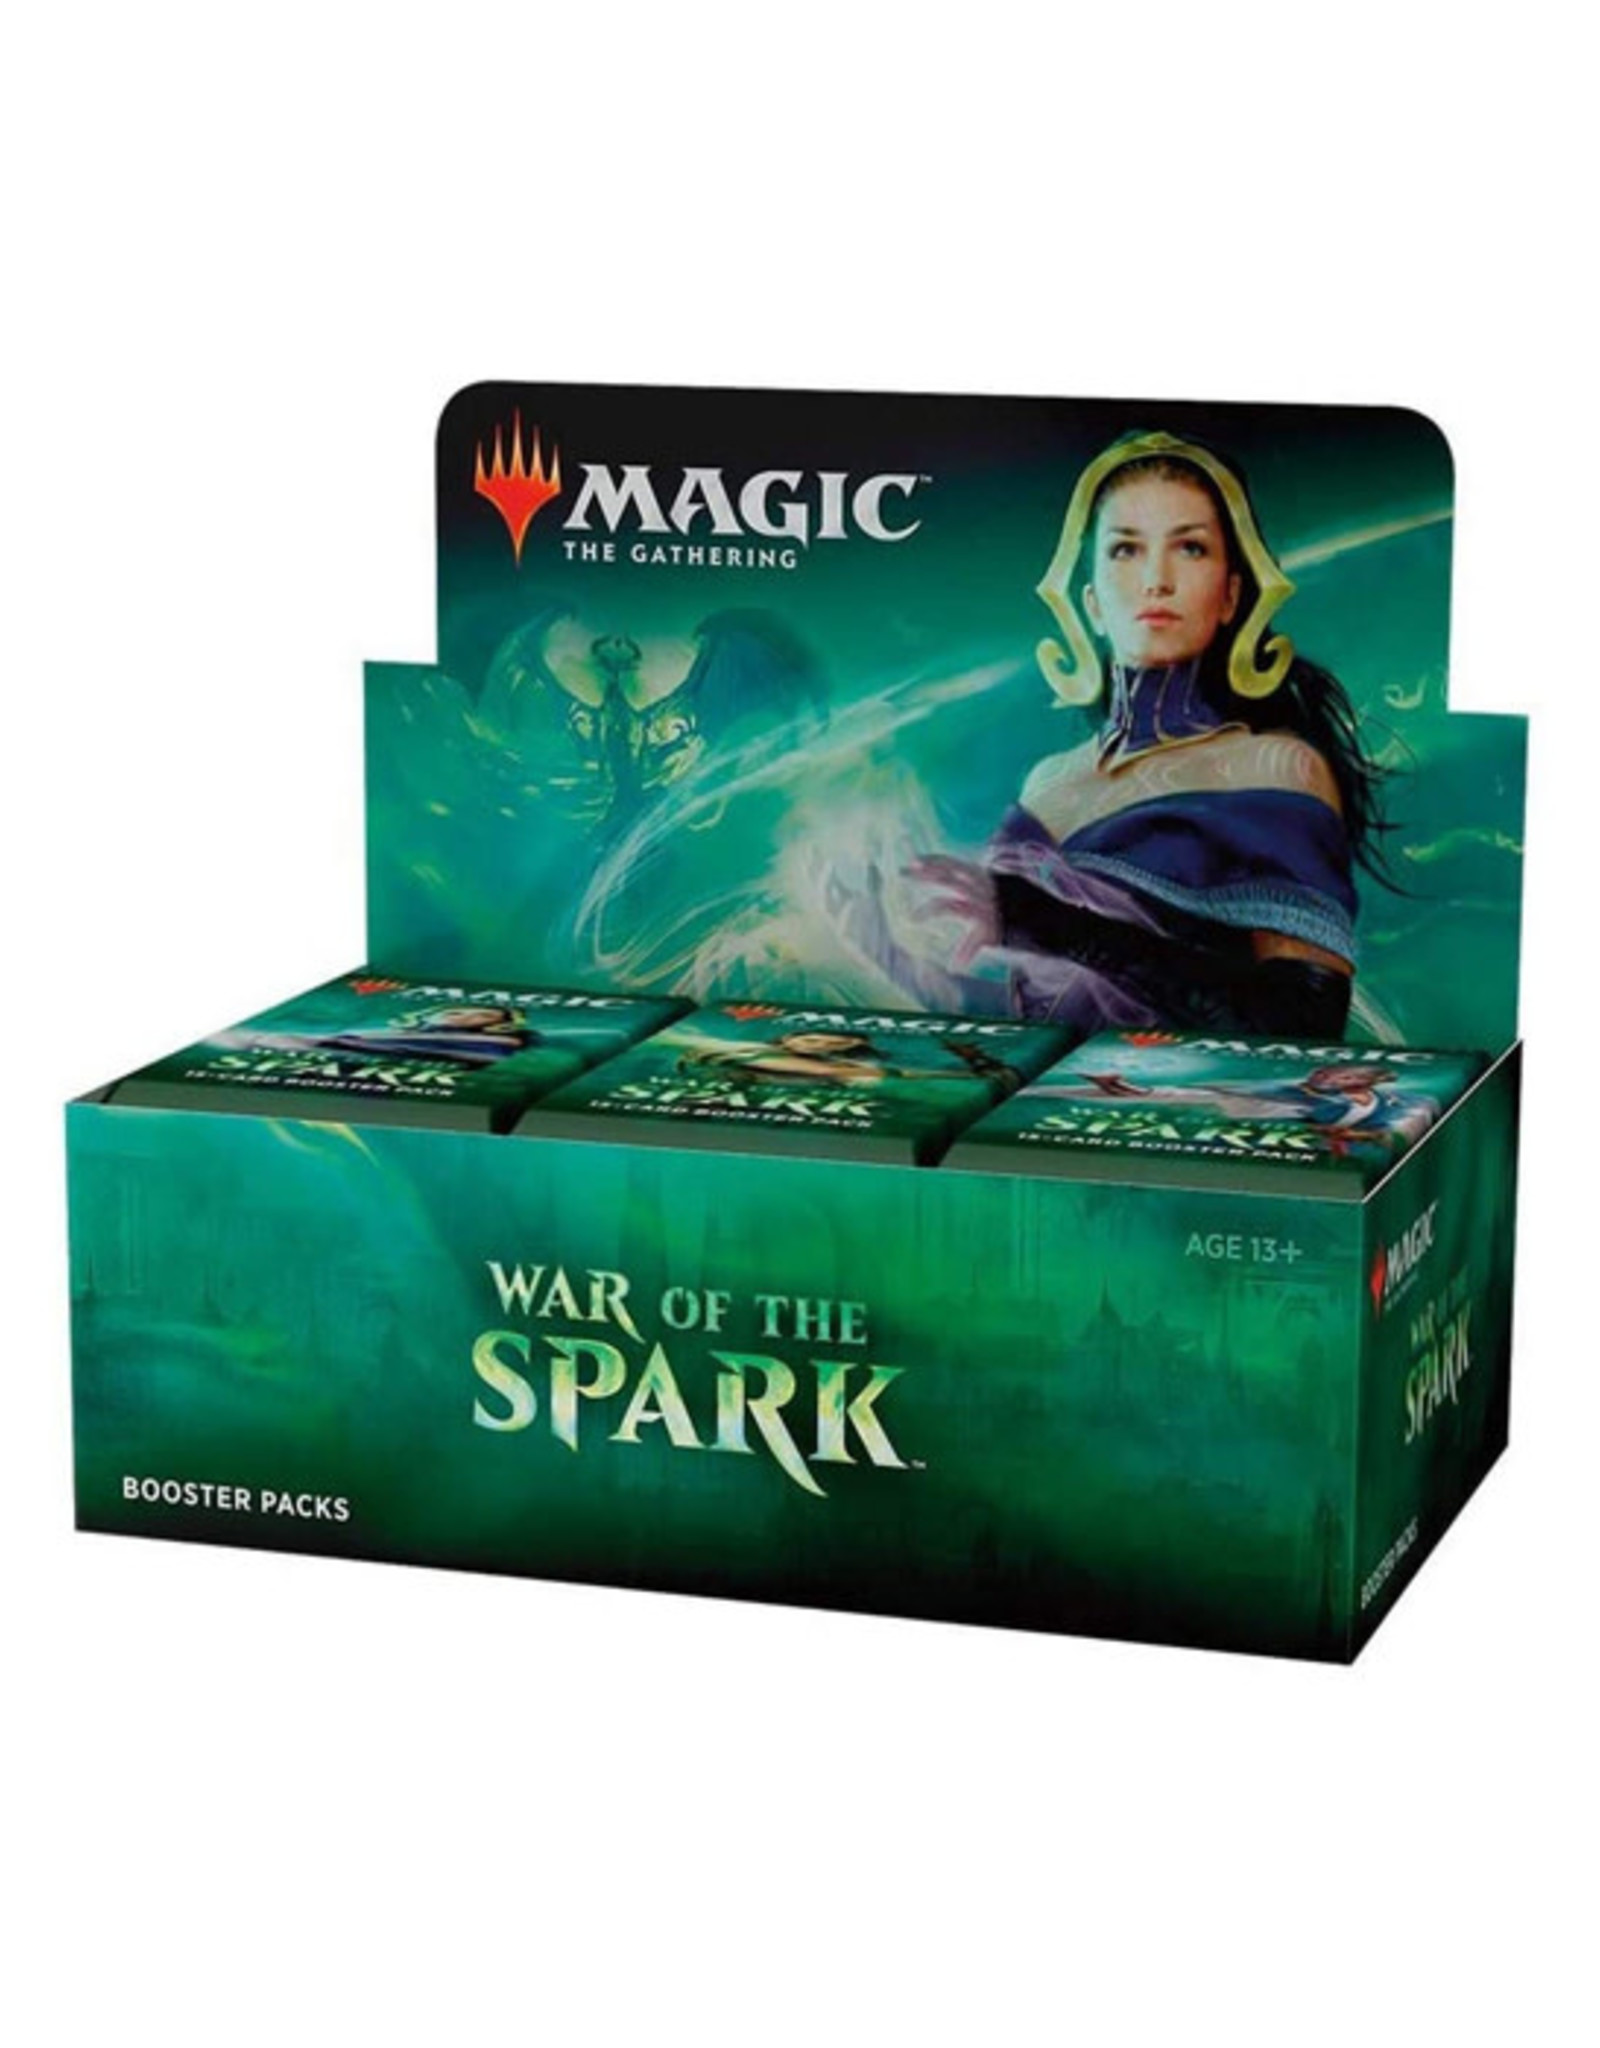 Magic: The Gathering Magic: The Gathering - War of the Spark - Booster Box